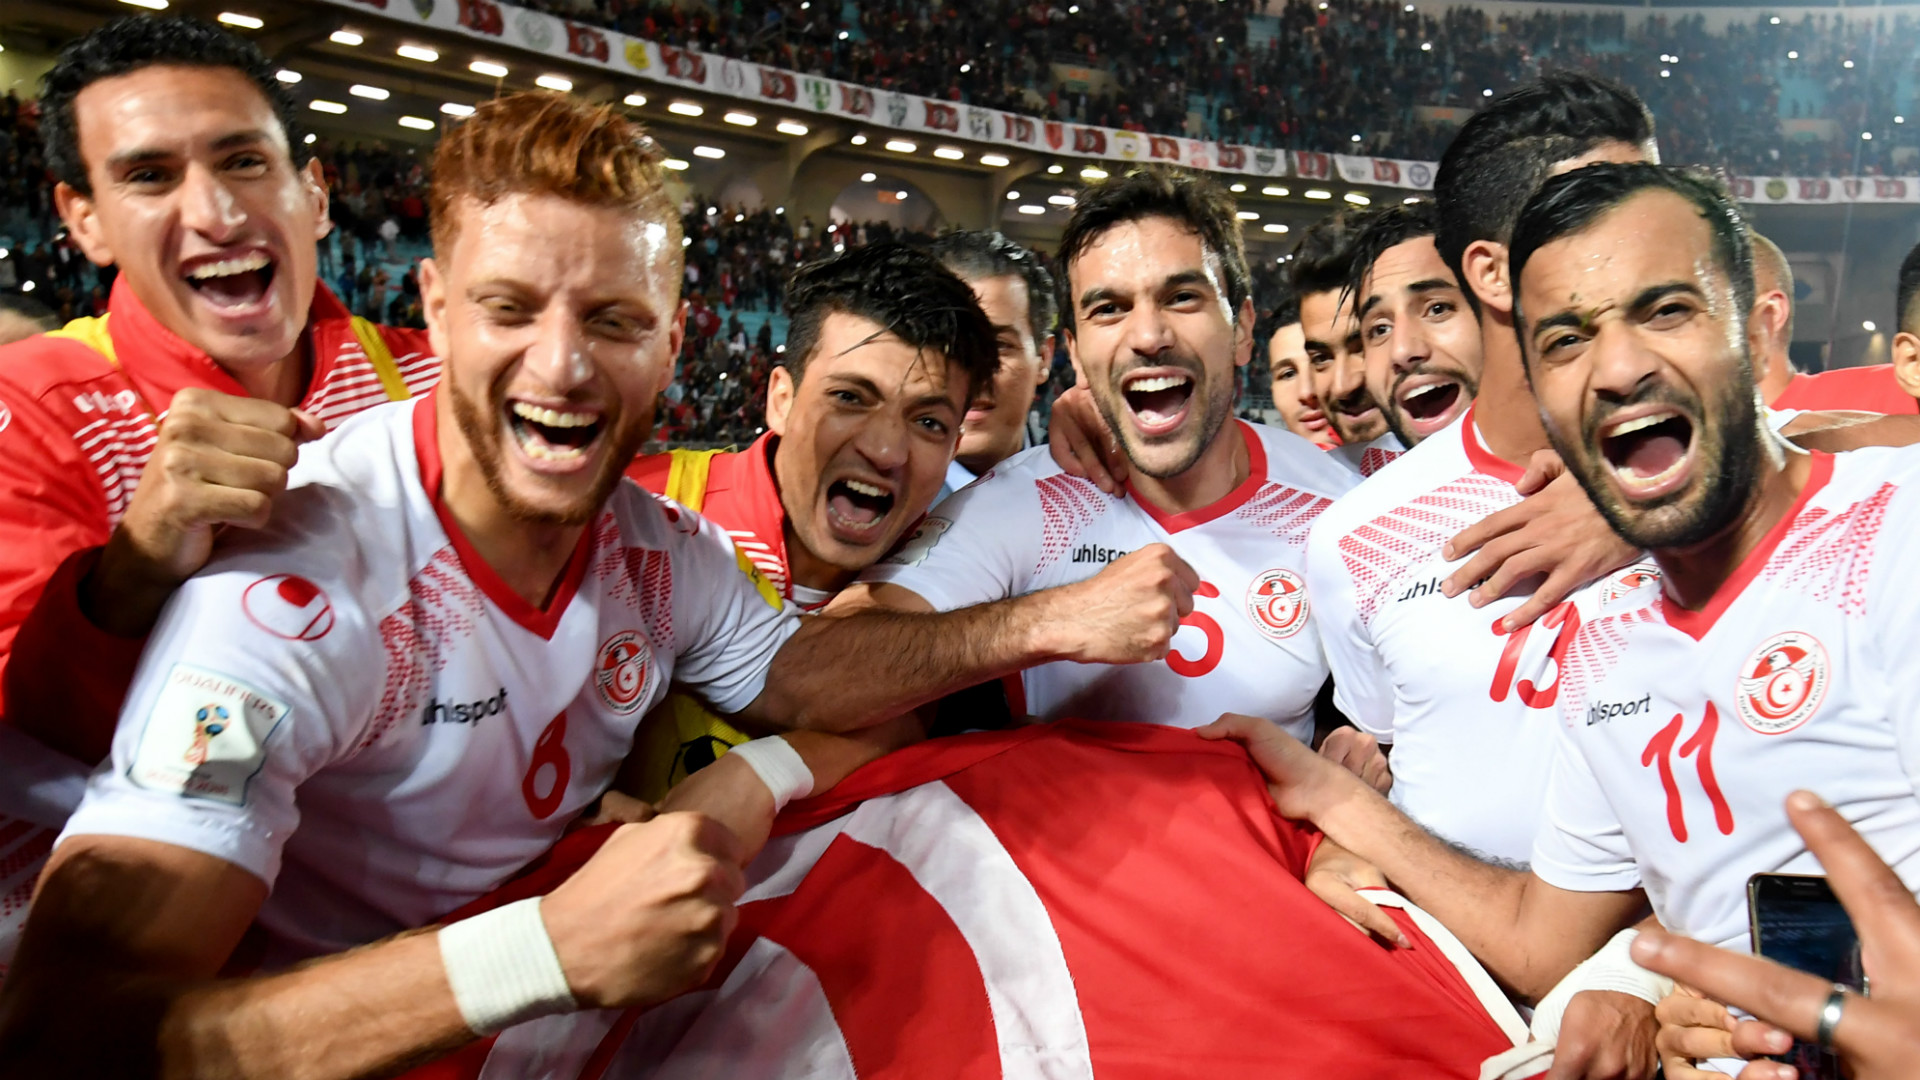 Tunisia World Cup